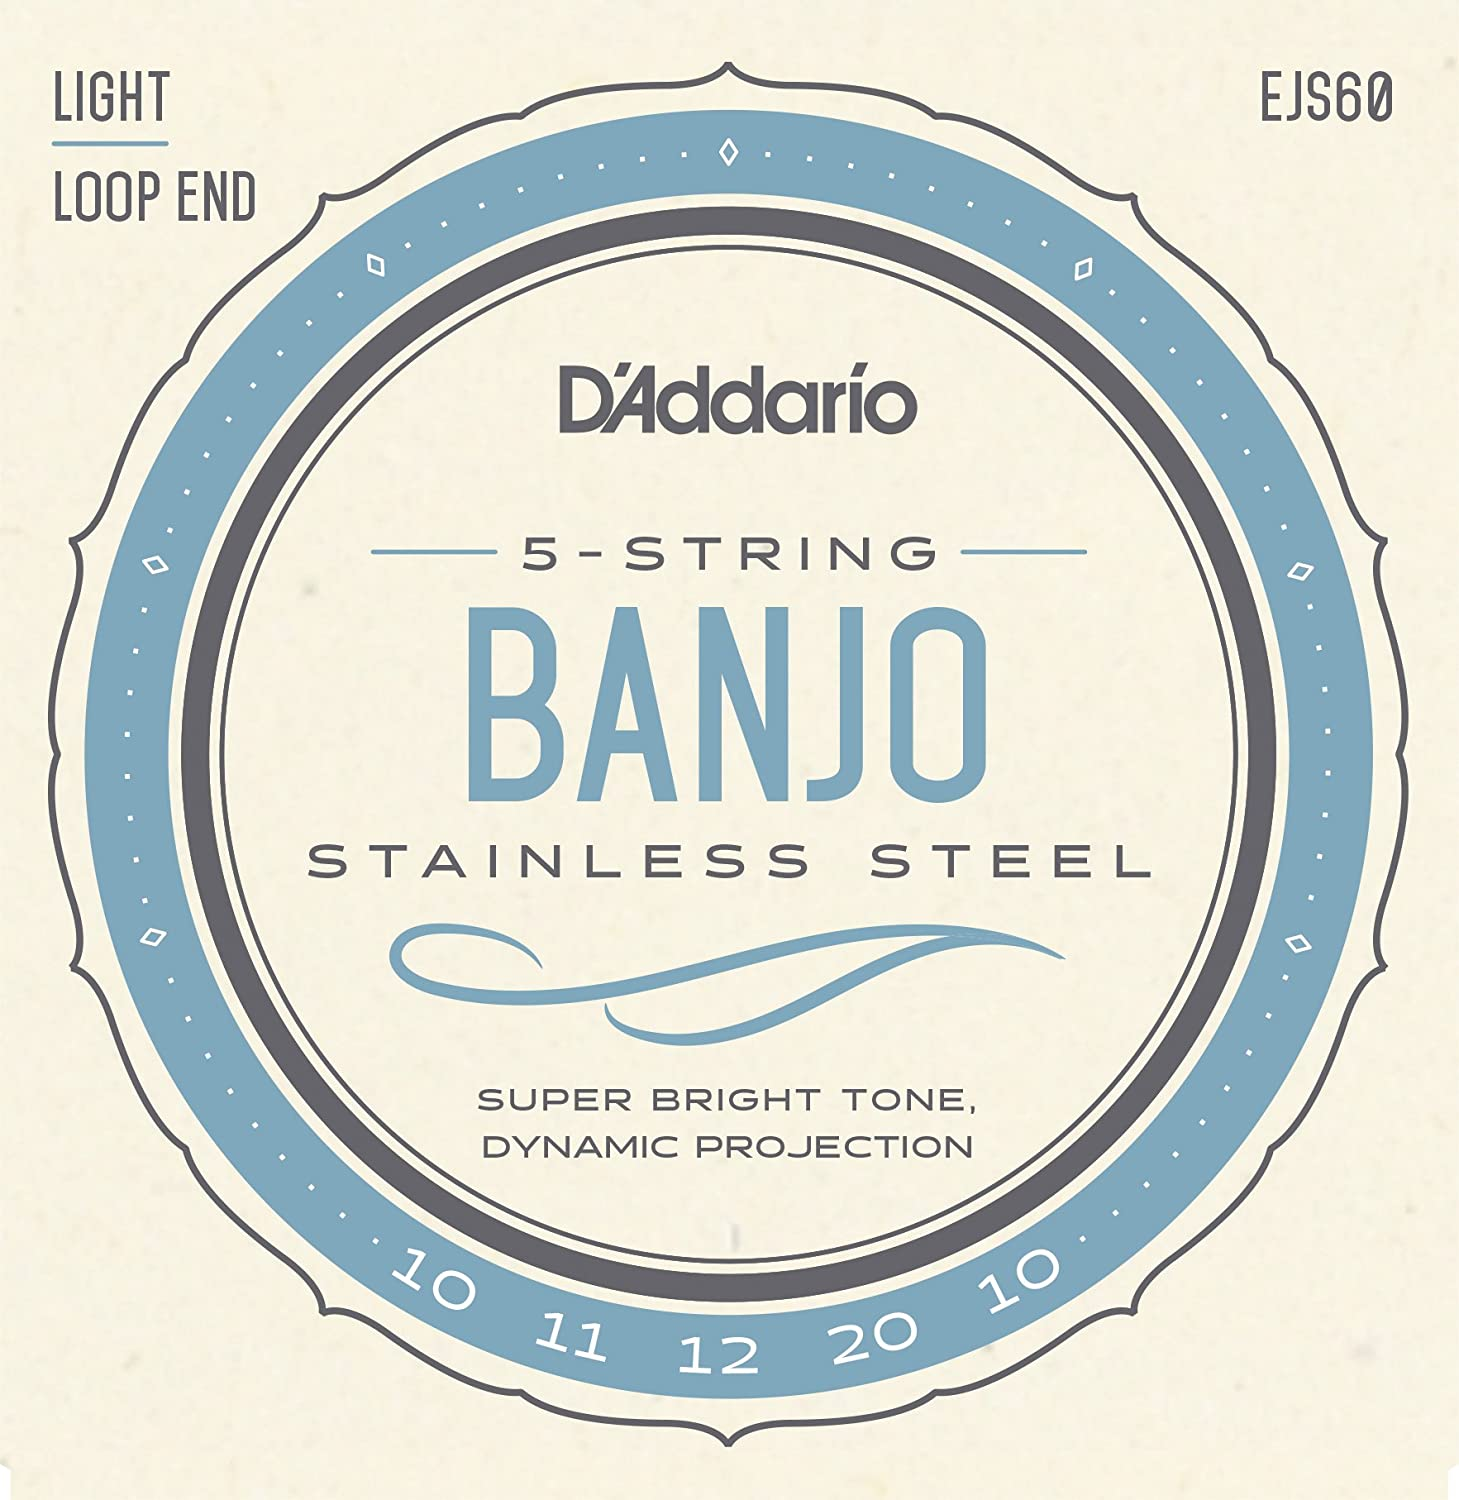 D'Addario EJS60 Stainless Steel 5-String Banjo Strings, Light, 9-20 D' Addario